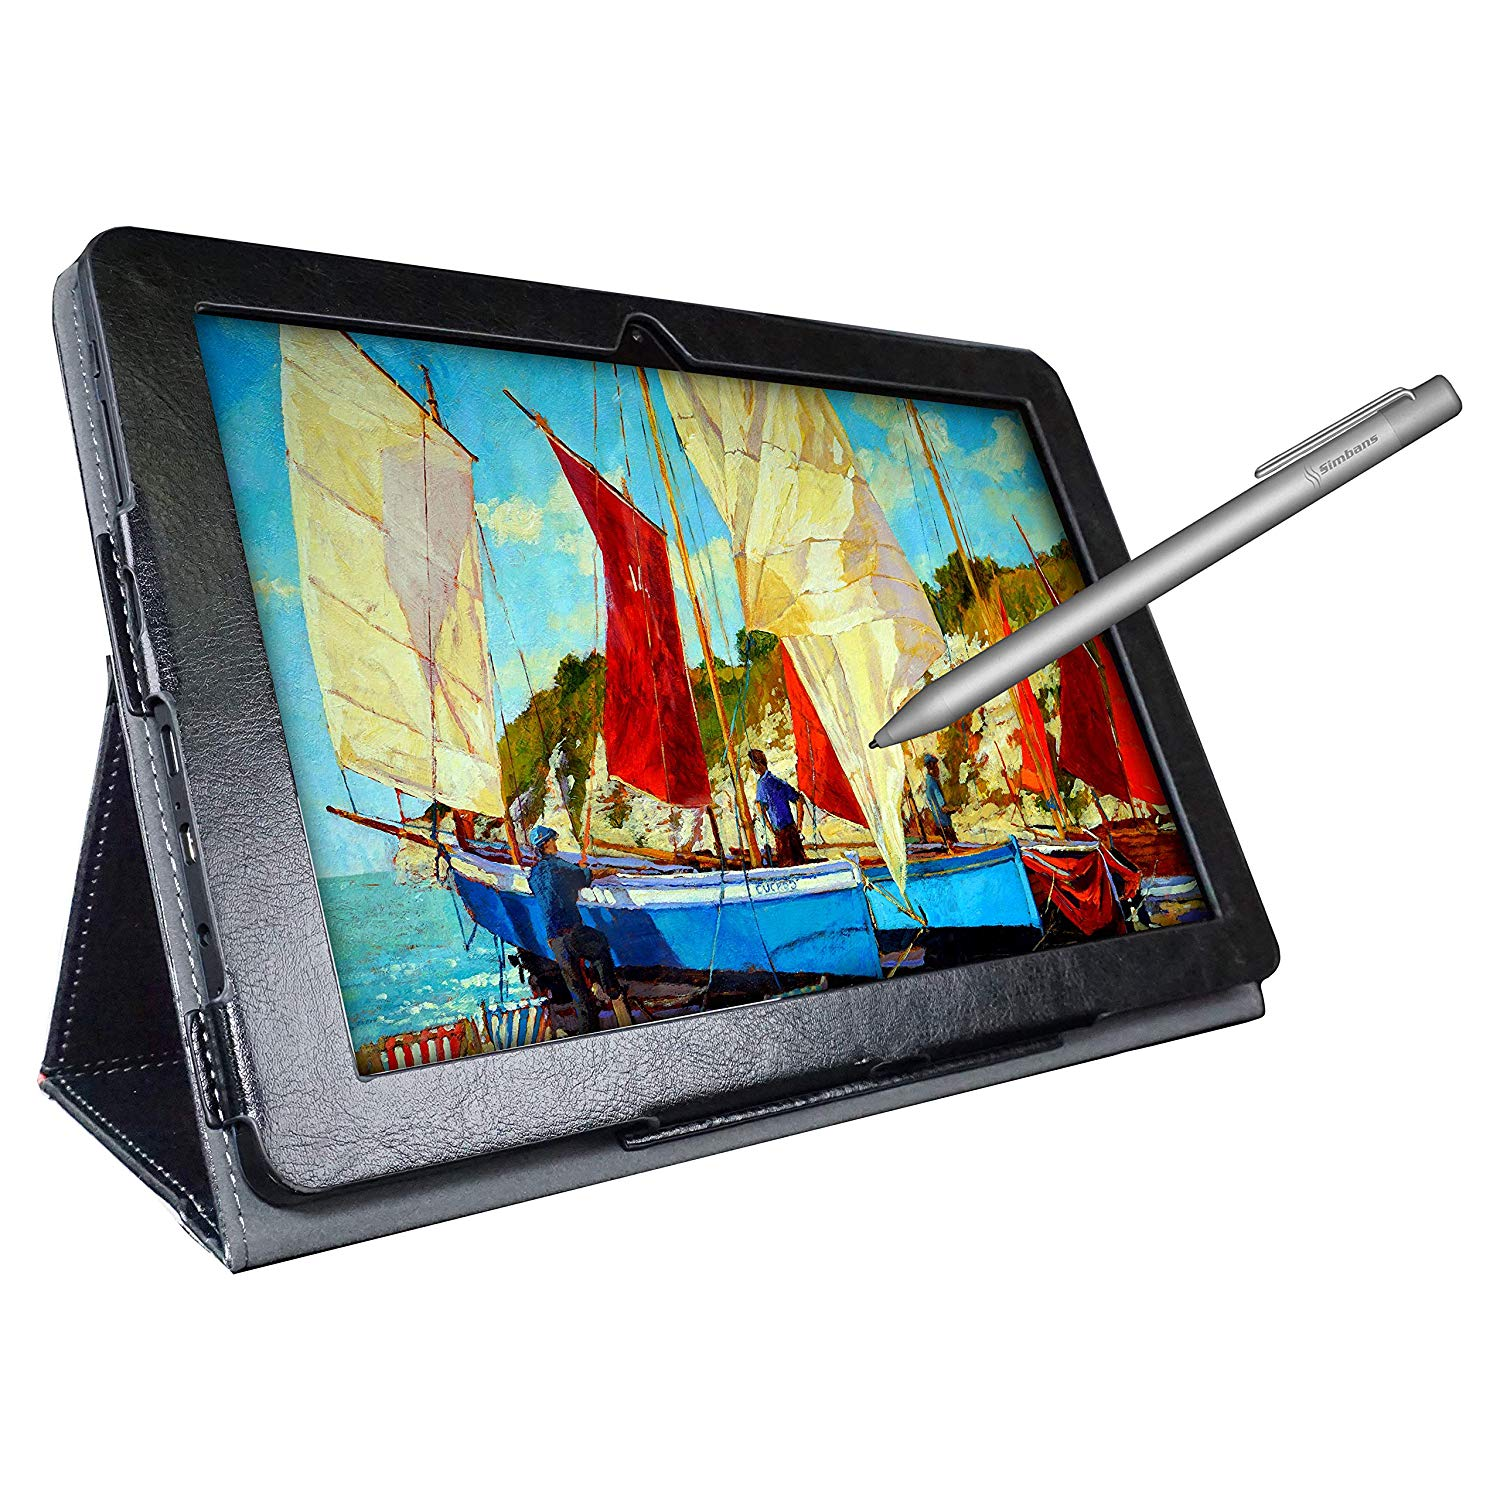 [3 Bonus Items] Simbans Picasso Tab 10 Inch Drawing Tablet and Stylus Pen | 2GB, 32GB, Android 9 Pie, IPS Screen | Best Gift for Beginner Graphic Artist Boy, Girl | HDMI, USB, GPS, Bluetooth, Wi-Fi